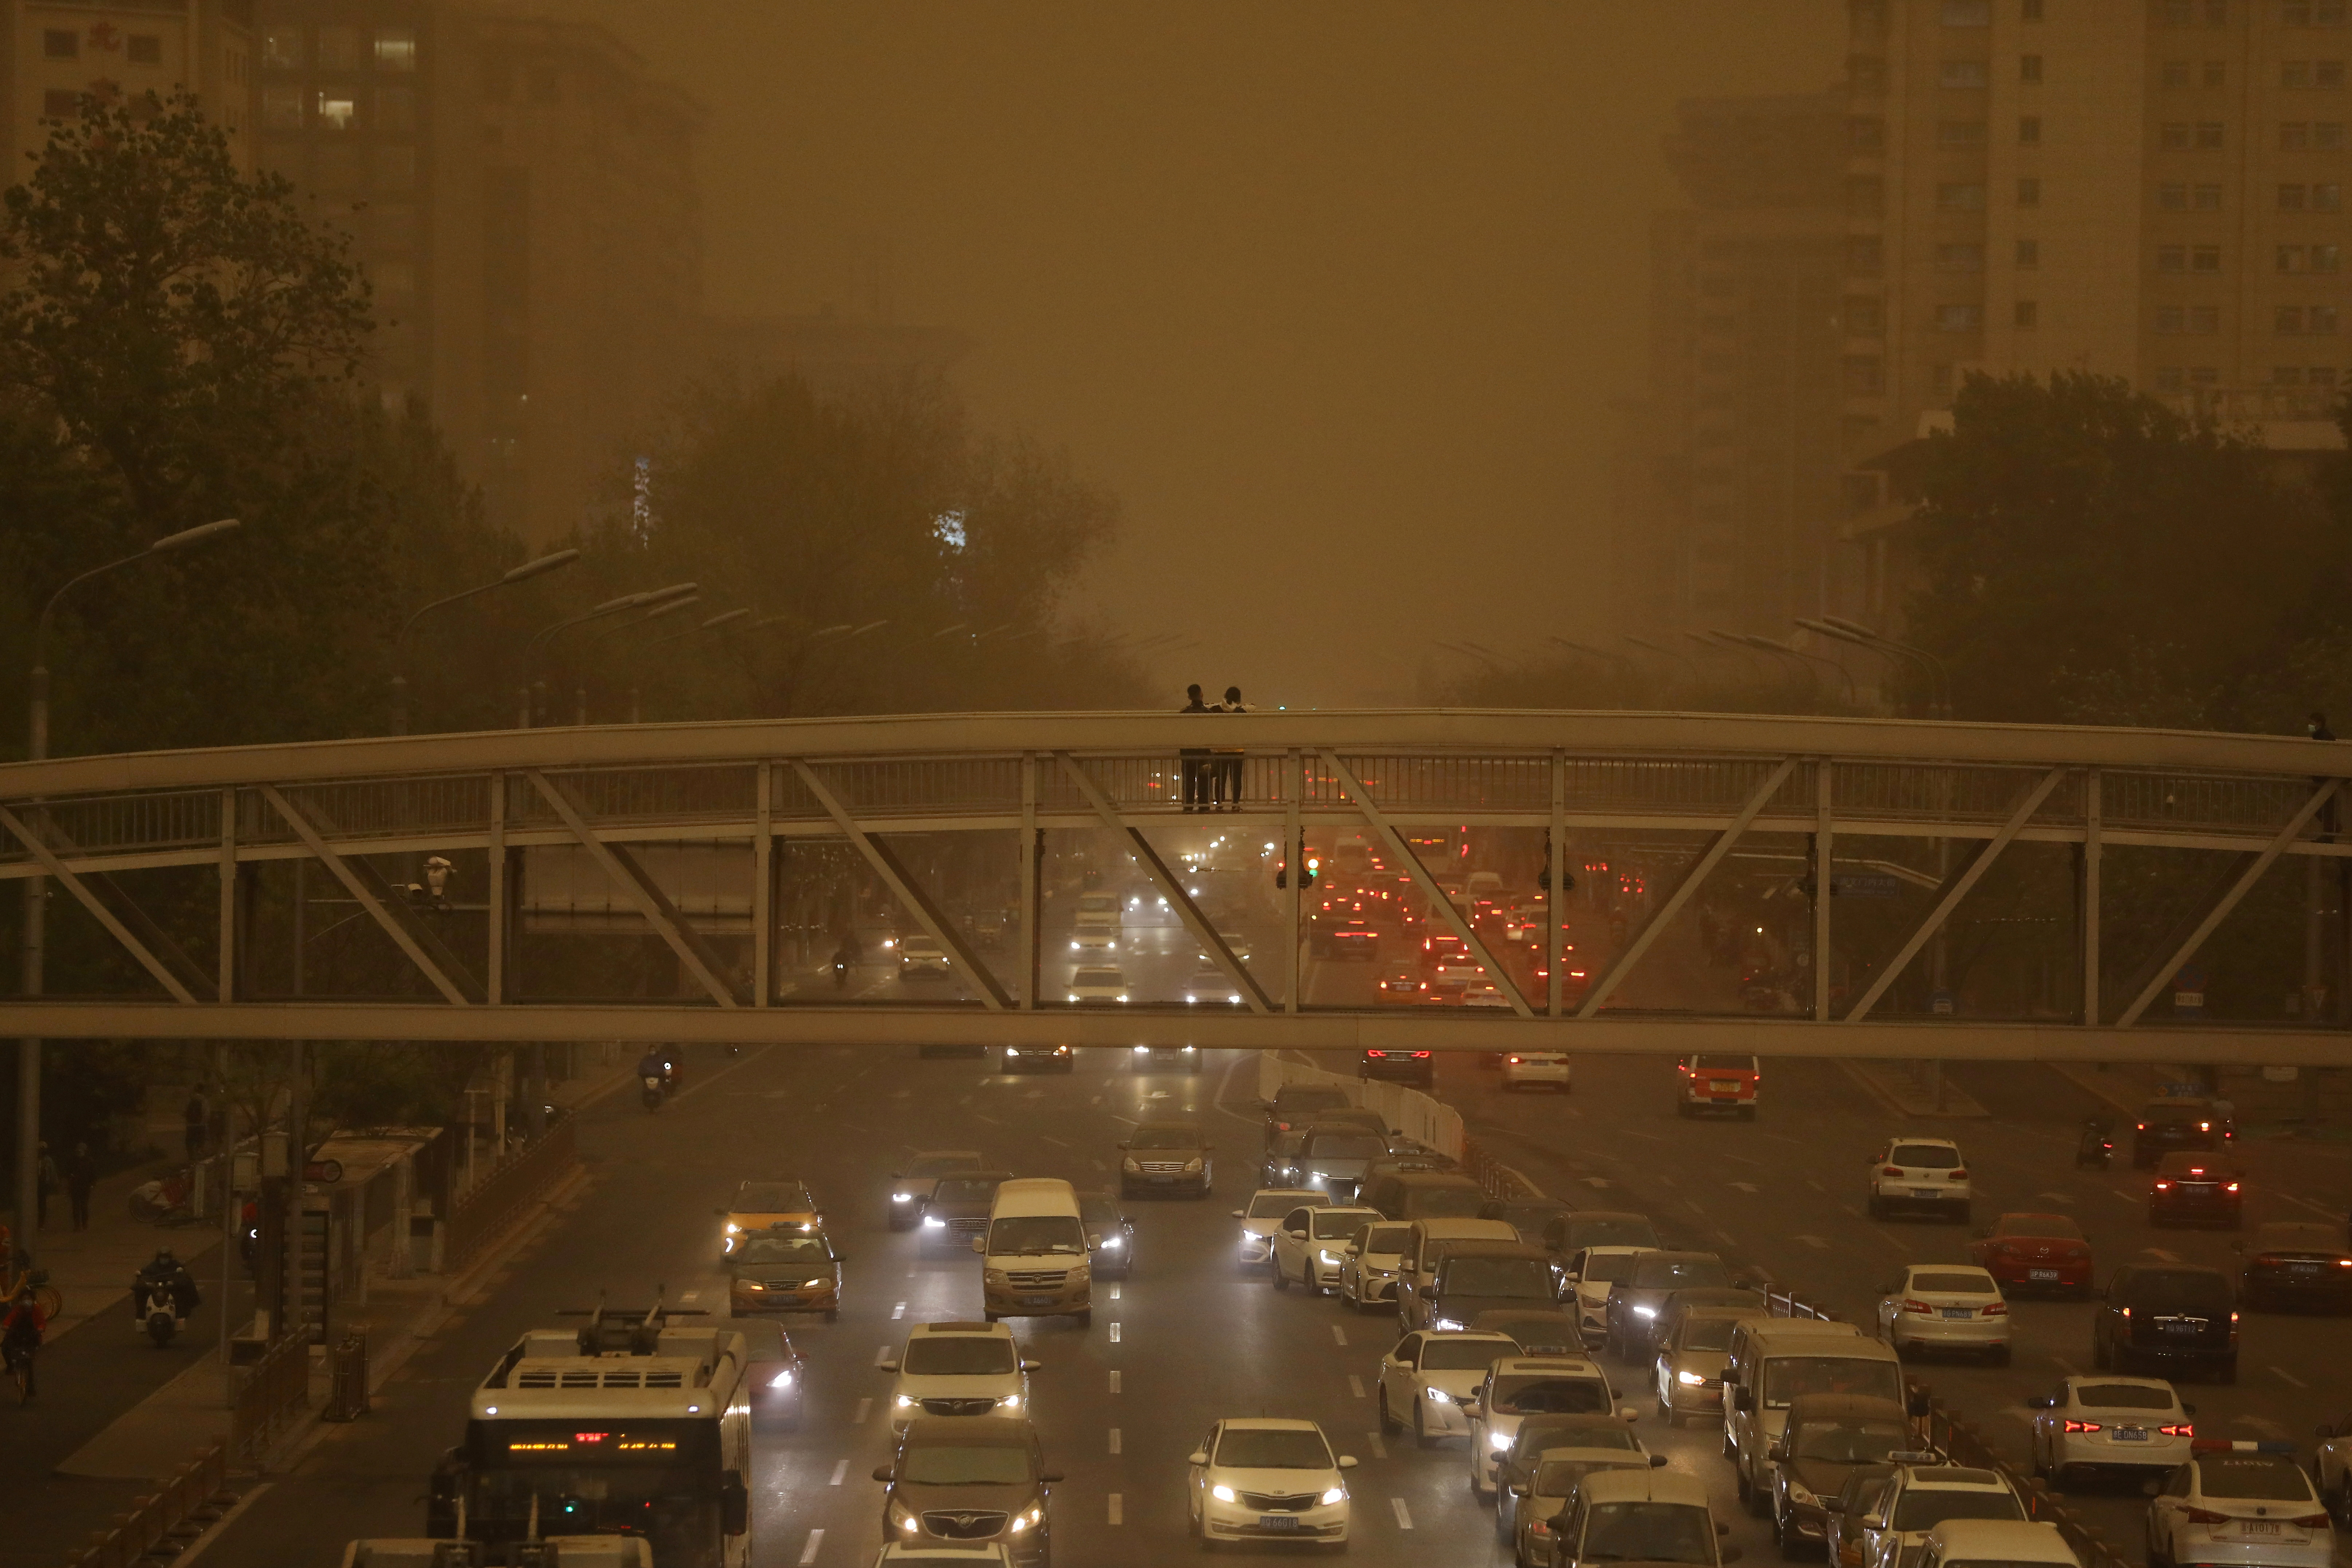 Pedestrians stand on an overpass above car traffic amid a duststorm in Beijing, China April 15, 2021. REUTERS/Tingshu Wang